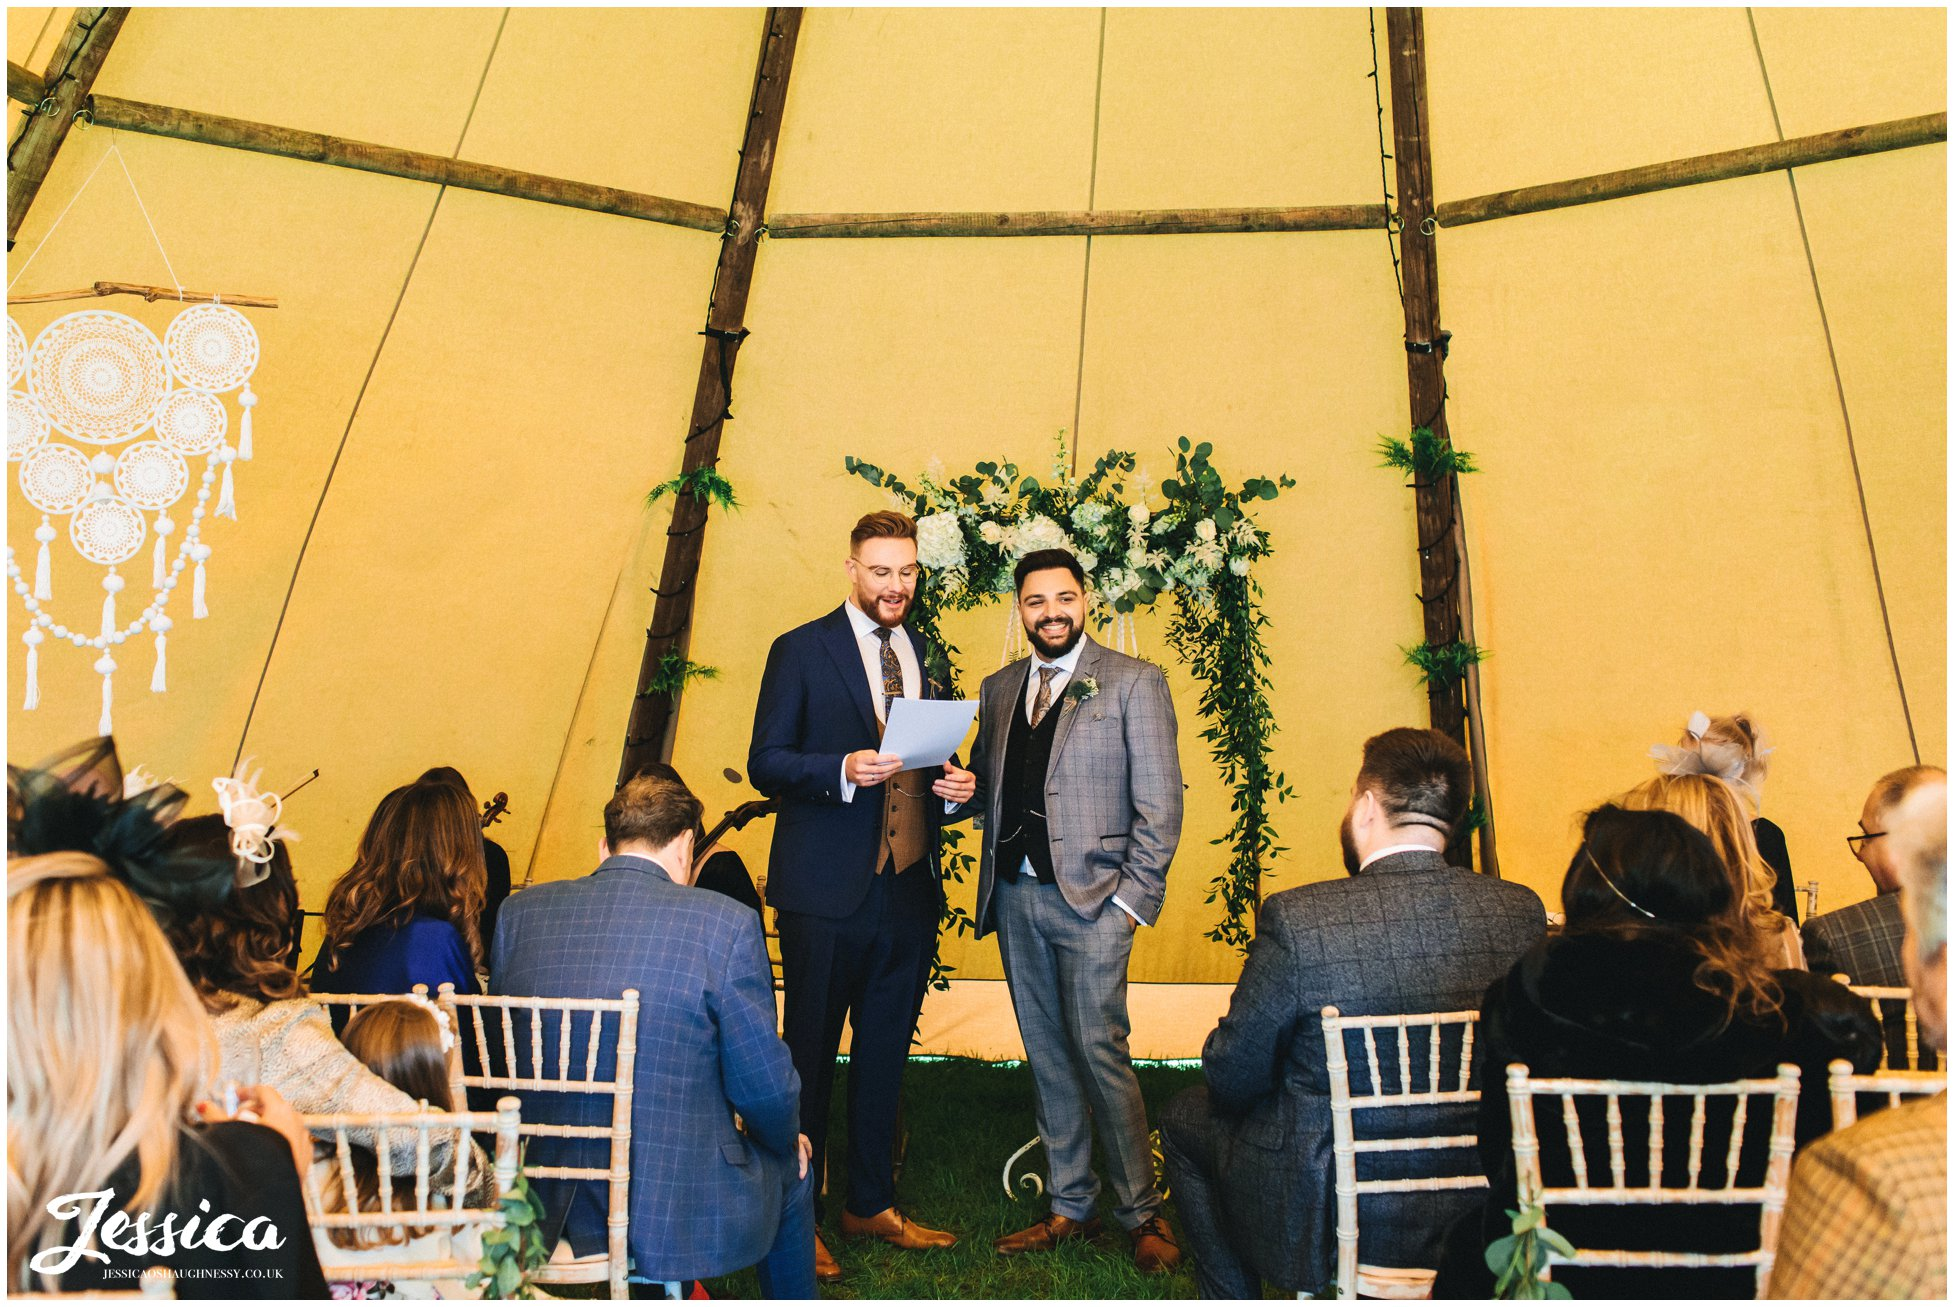 The grooms give speeches during their tipi ceremony